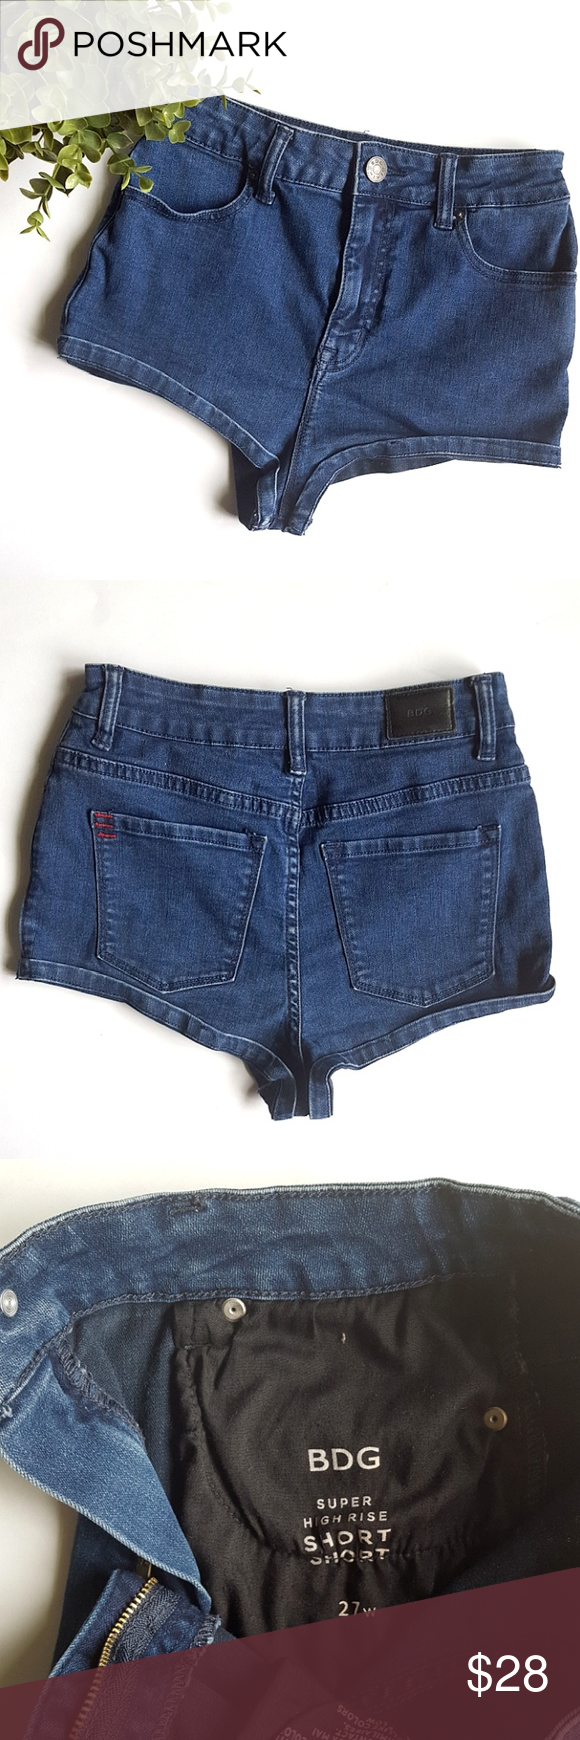 "BDG Super High Rise Short Shorts Gorgeous short shorts from UO. 4 pockets,  zipper closure and single button,  belt loops, folded hem.  13"" waist,  11.5"" rise,  1"" inseam.  Worn a handful of times, in excellent condition. Urban Outfitters Shorts Jean Shorts"